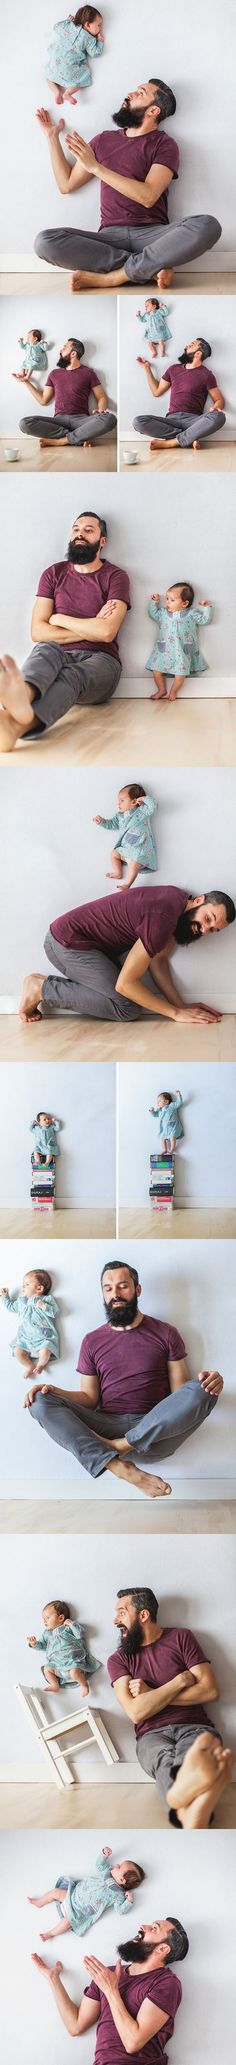 Creative way to photograph newborn with daddy Creative way to photograph newborn with daddy - Motherhood & Child Photos Newborn Pictures, Maternity Pictures, Pregnancy Photos, Baby Pictures, Newborn Baby Photography, Children Photography, Family Photography, Umbrella Photography, Photography Flowers